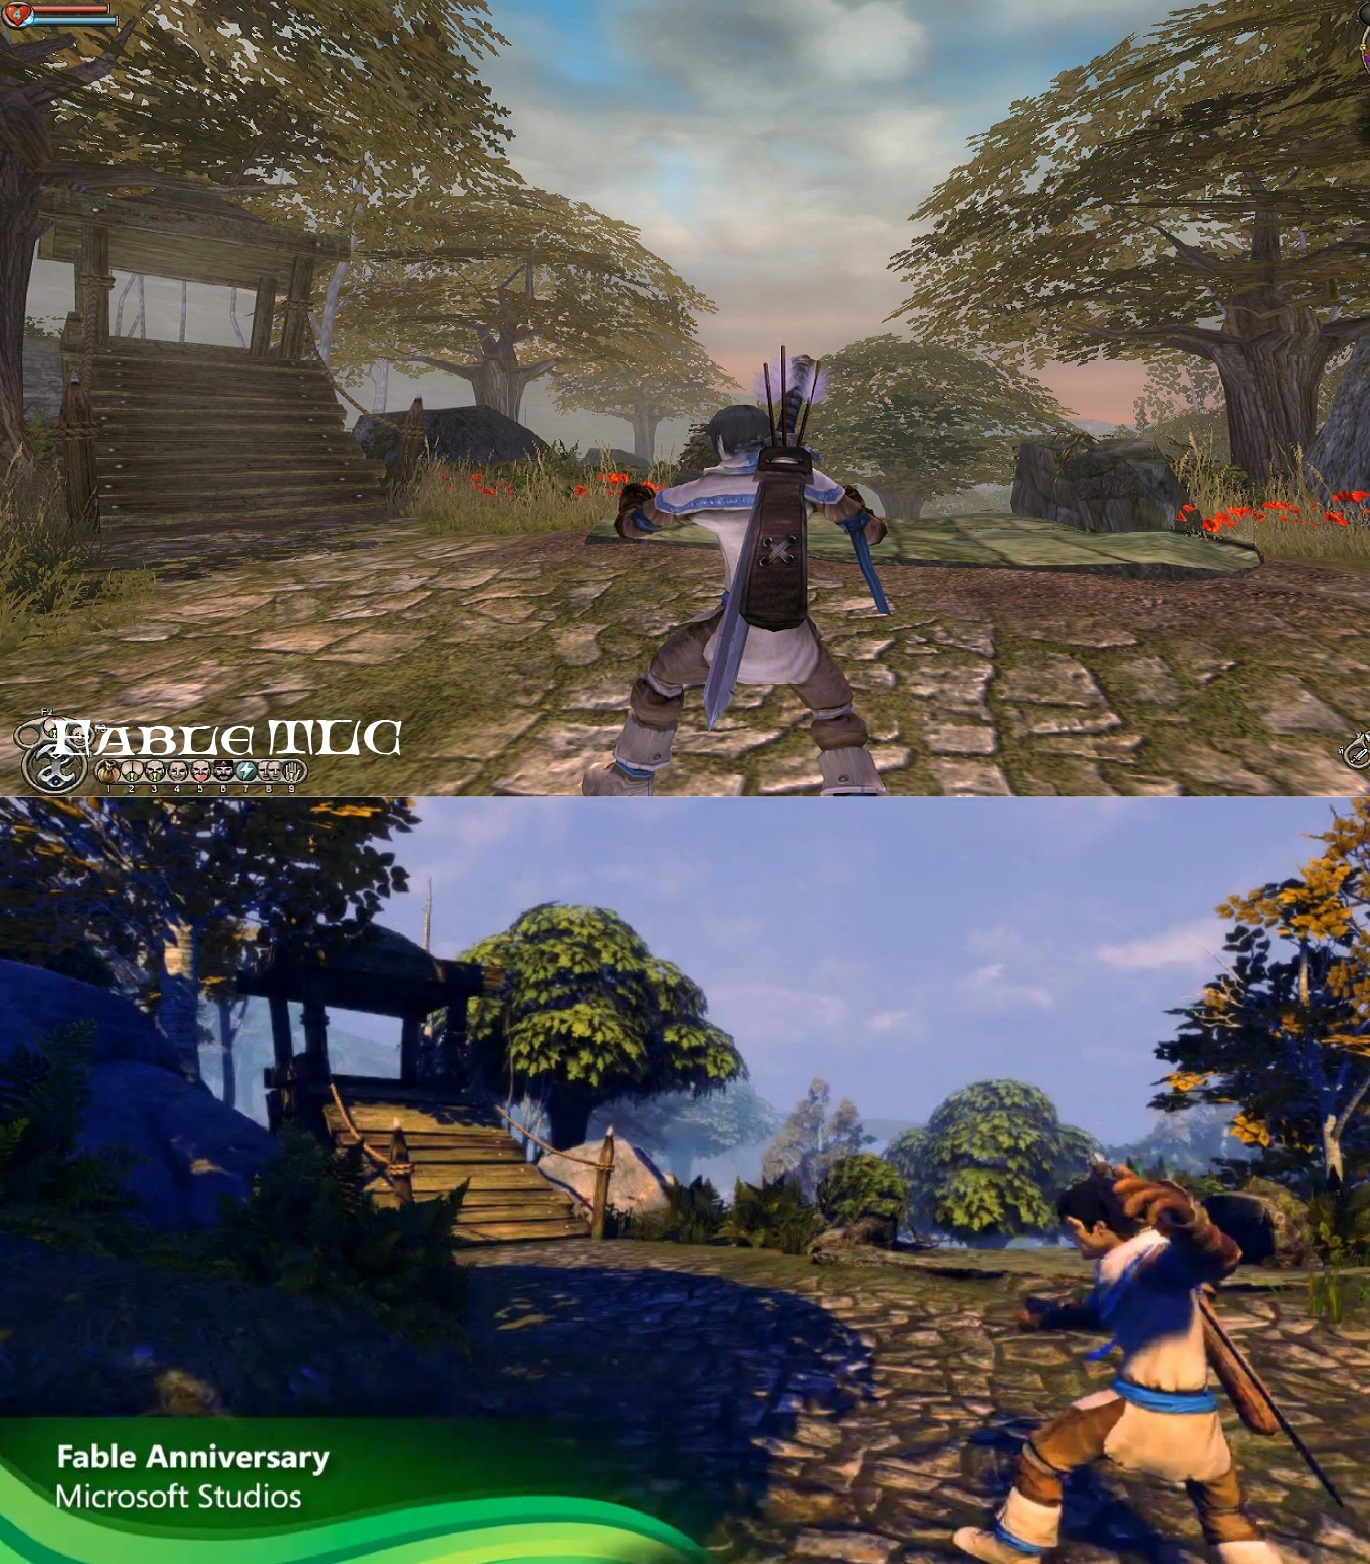 Fable tlc sex mod fucking movies